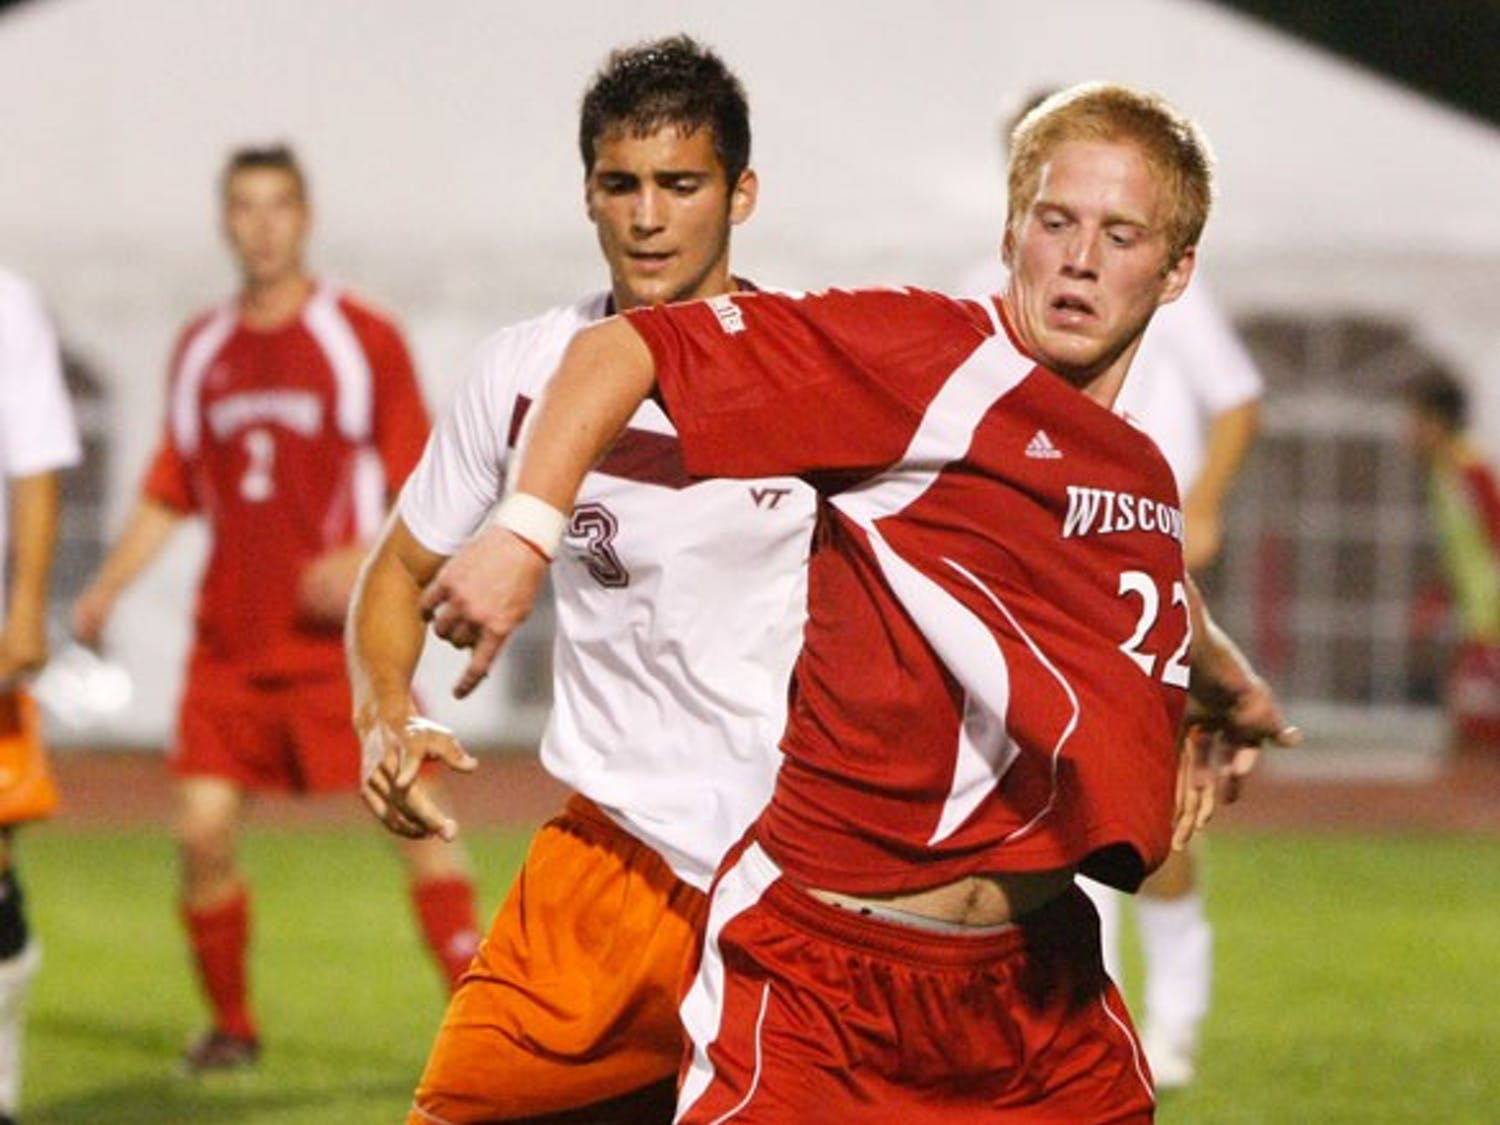 Badgers earn first win with late goal